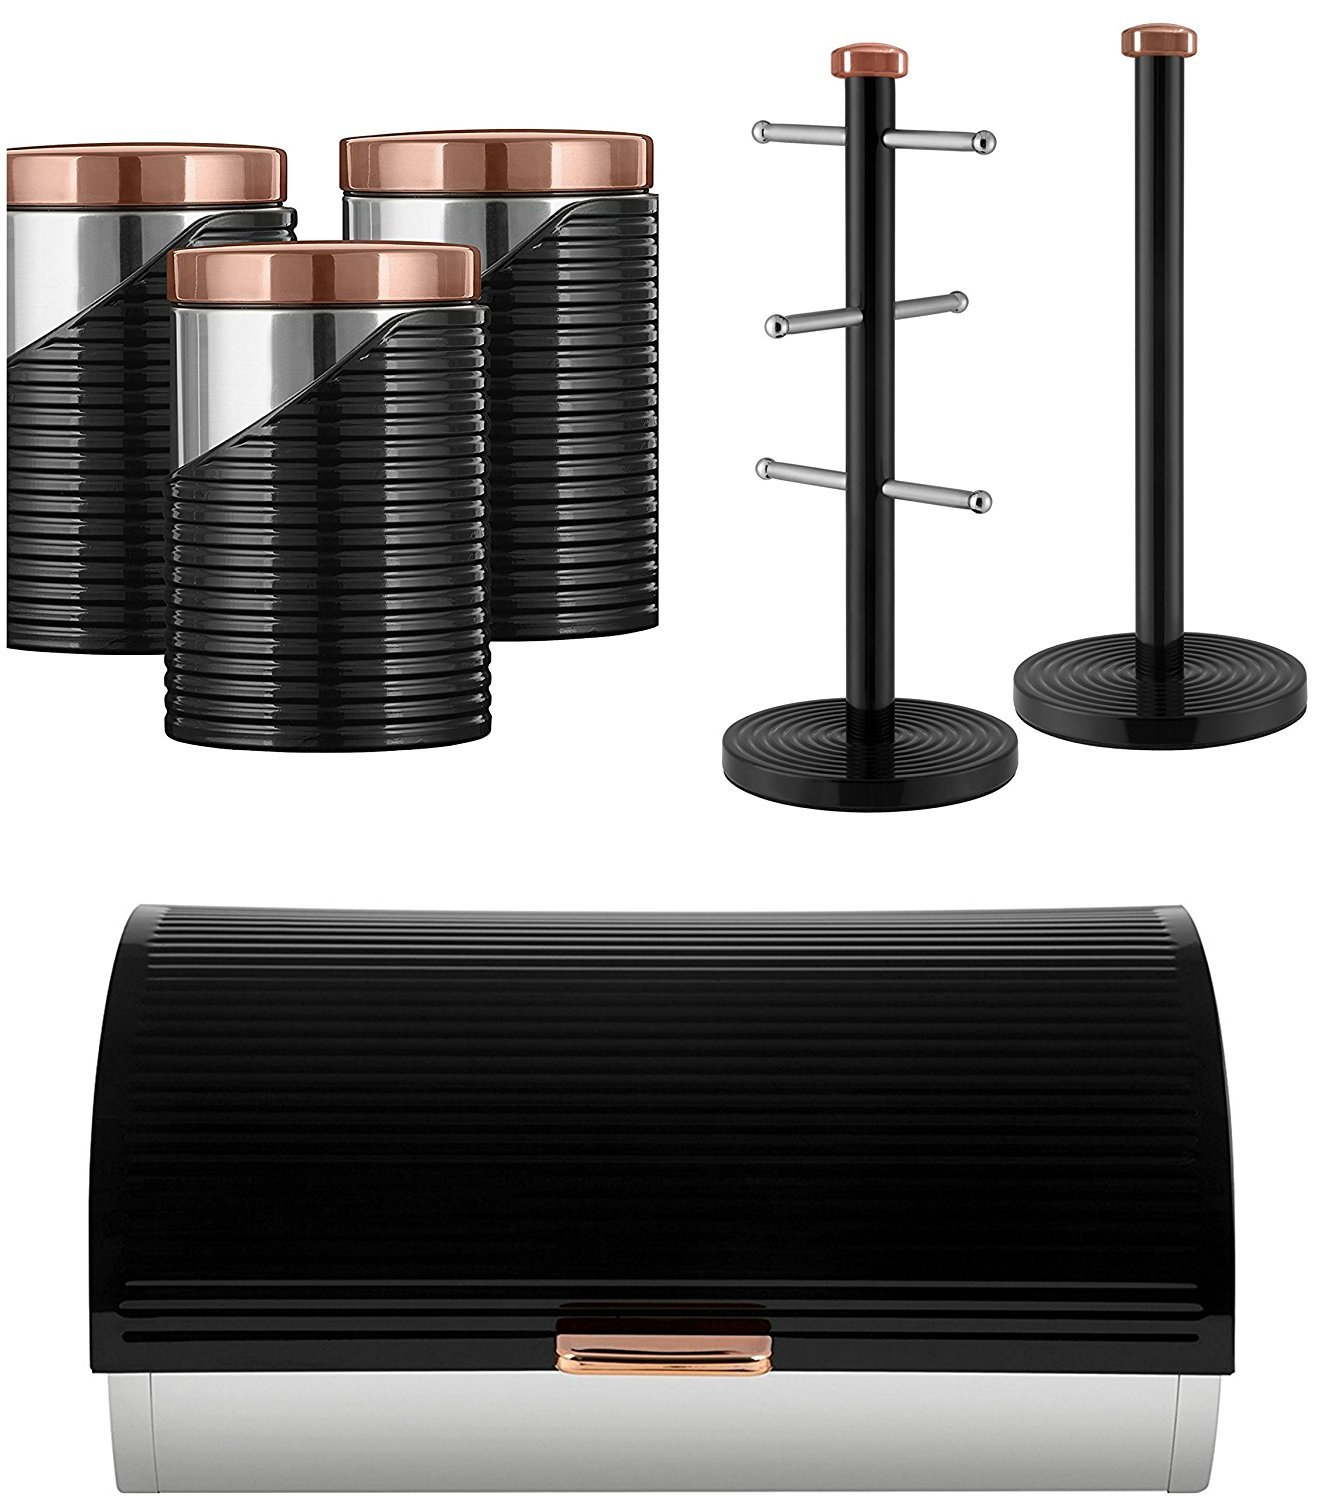 tw Set of 3 Tower Rose Gold Linear Stylish Kitchen Accessories - ROSE GOLD & BLACK Linear Bread bin, Set of 3 Canisters and Towel Pole and Mug Tree